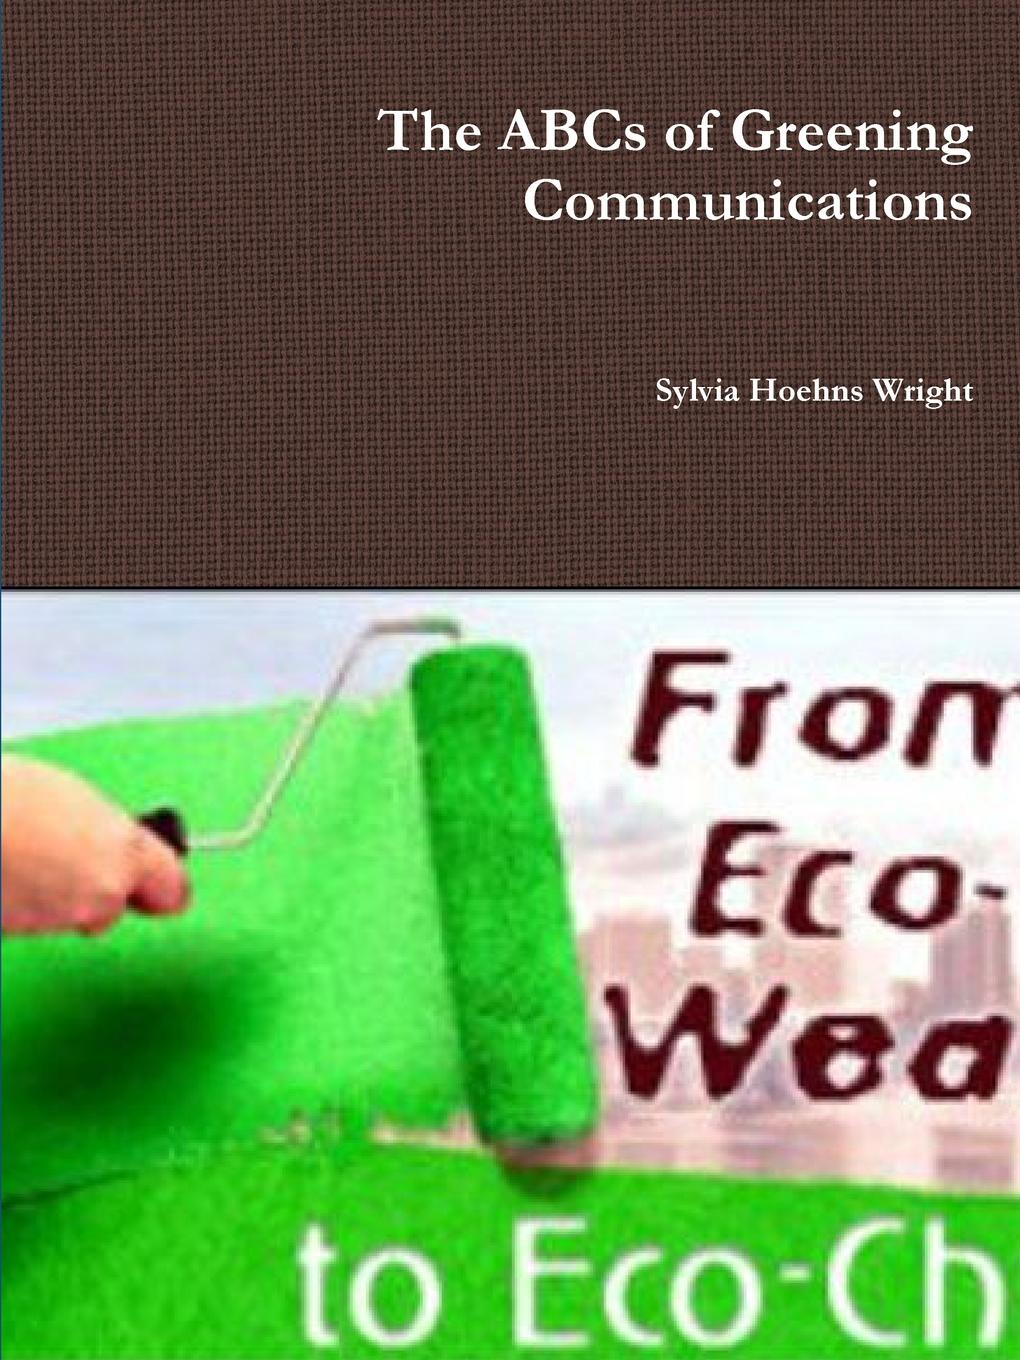 The ABCs of Greening Communications The ABCs of Greening Communications is published to inspire all...